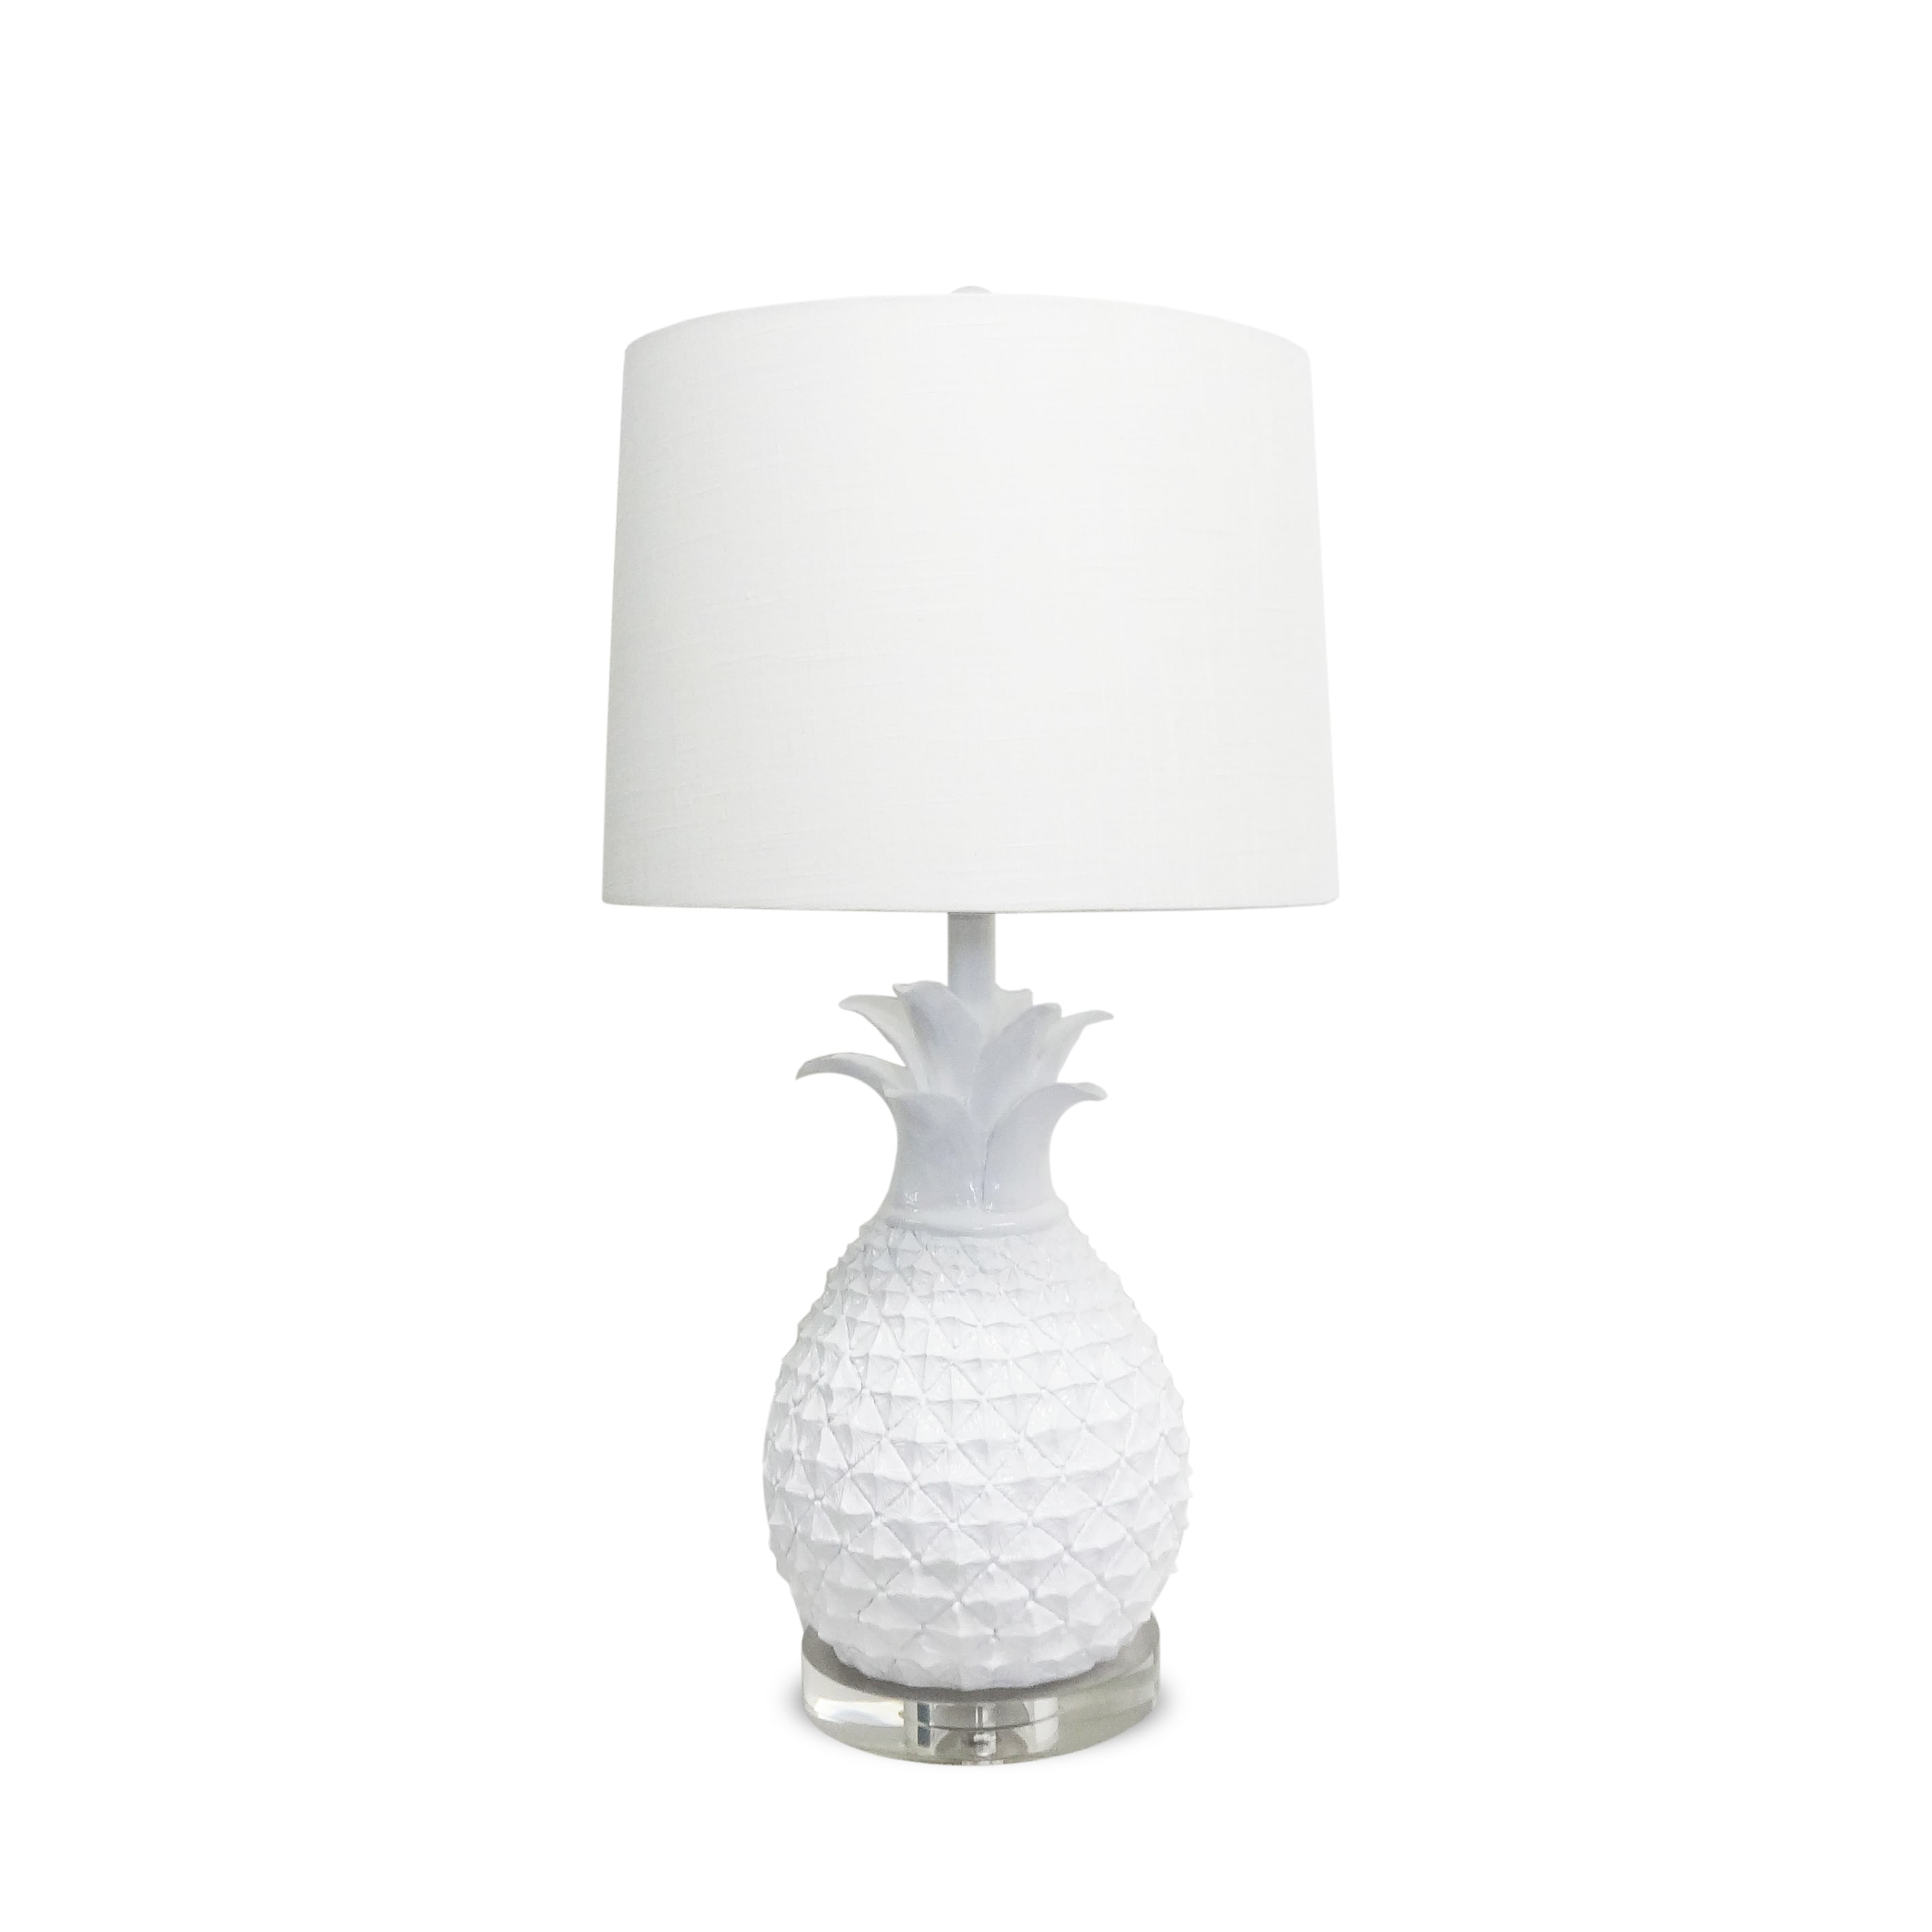 Unbranded White Pineapple Lamp (Crystal)